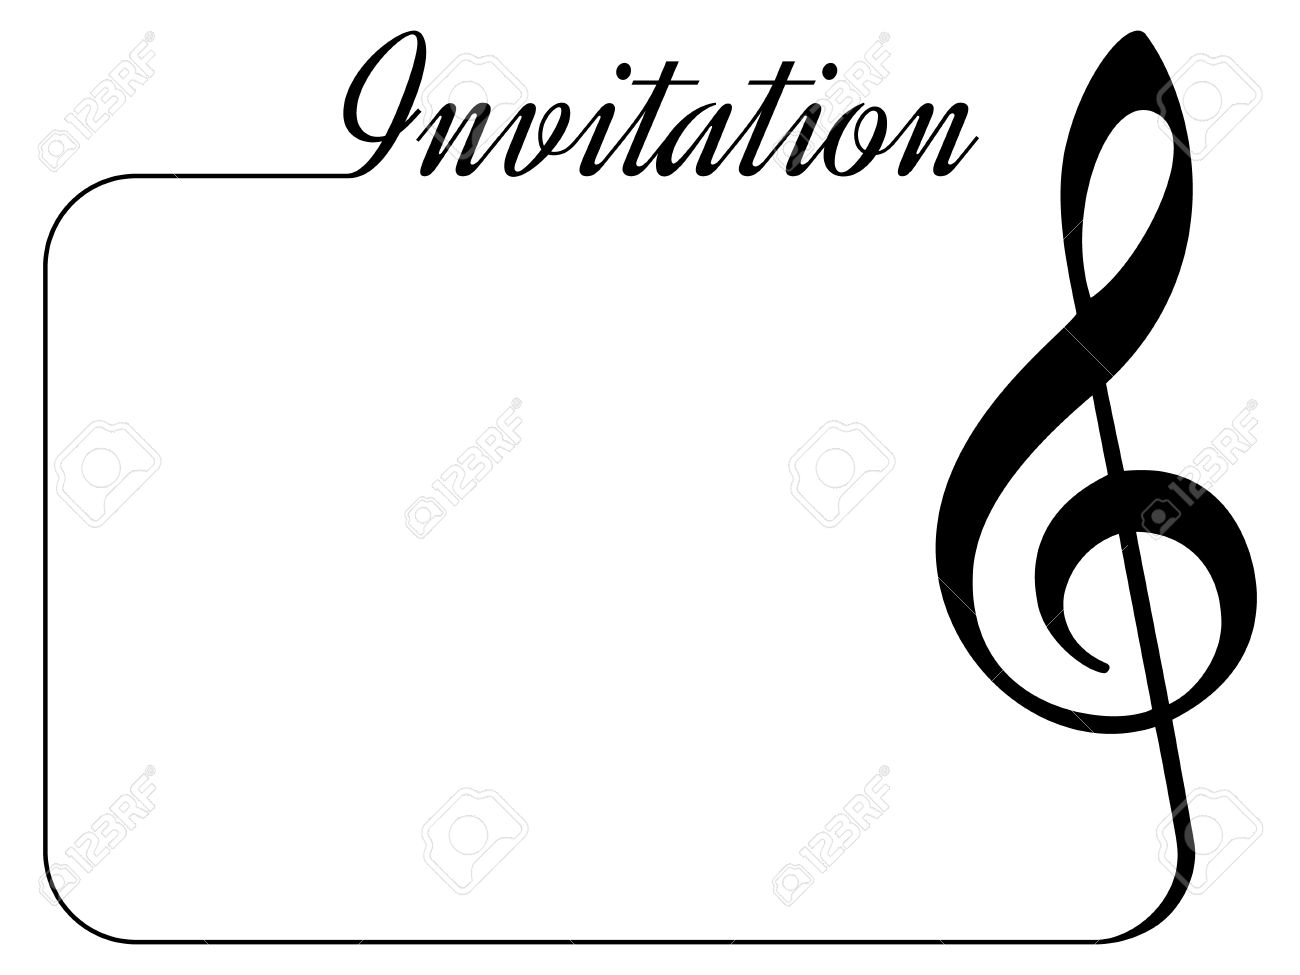 invitation card for music performance or concert isolated template